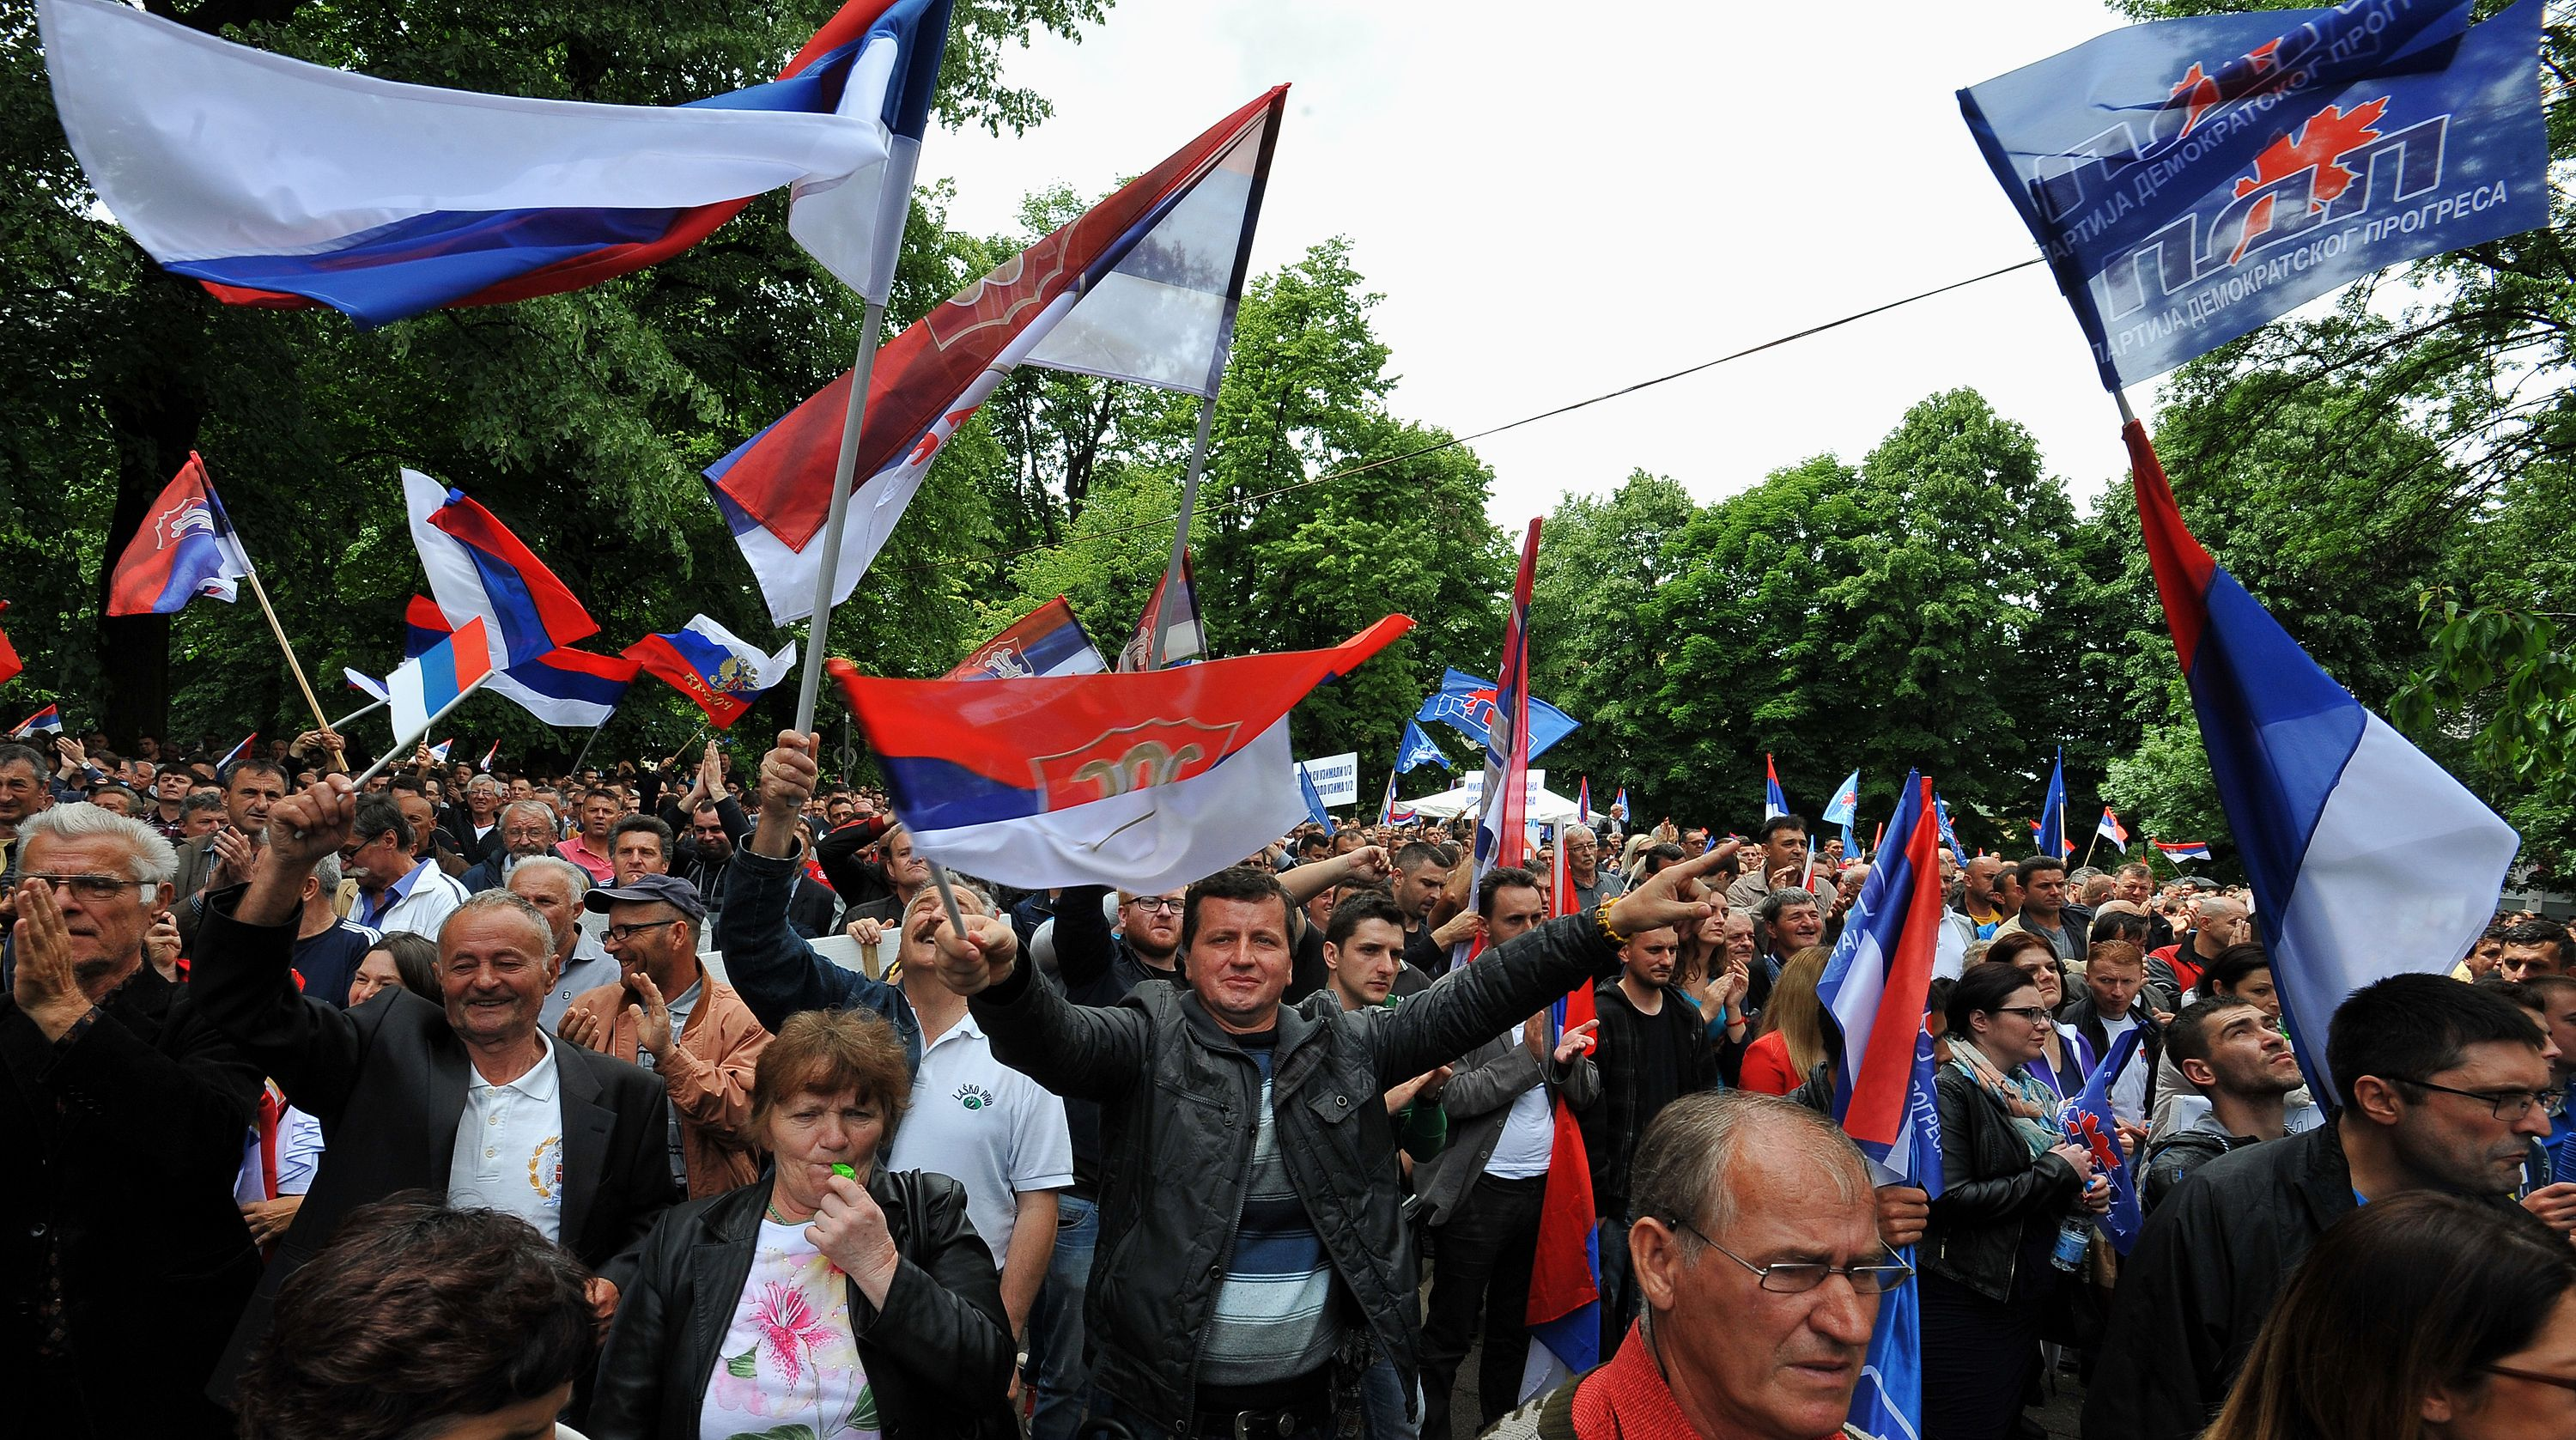 Bosnian-Serb supporters of right wing opposition parties wave flags during a protest on May 14, 2016 in Banja Luka. Thousands of opponents and supporters of Republika Srpska leader Milorad Dodik faced each other at simultaneous gatherings, accusing each other of corruption and treason. ELVIS BARUKCIC/AFP/Getty Images